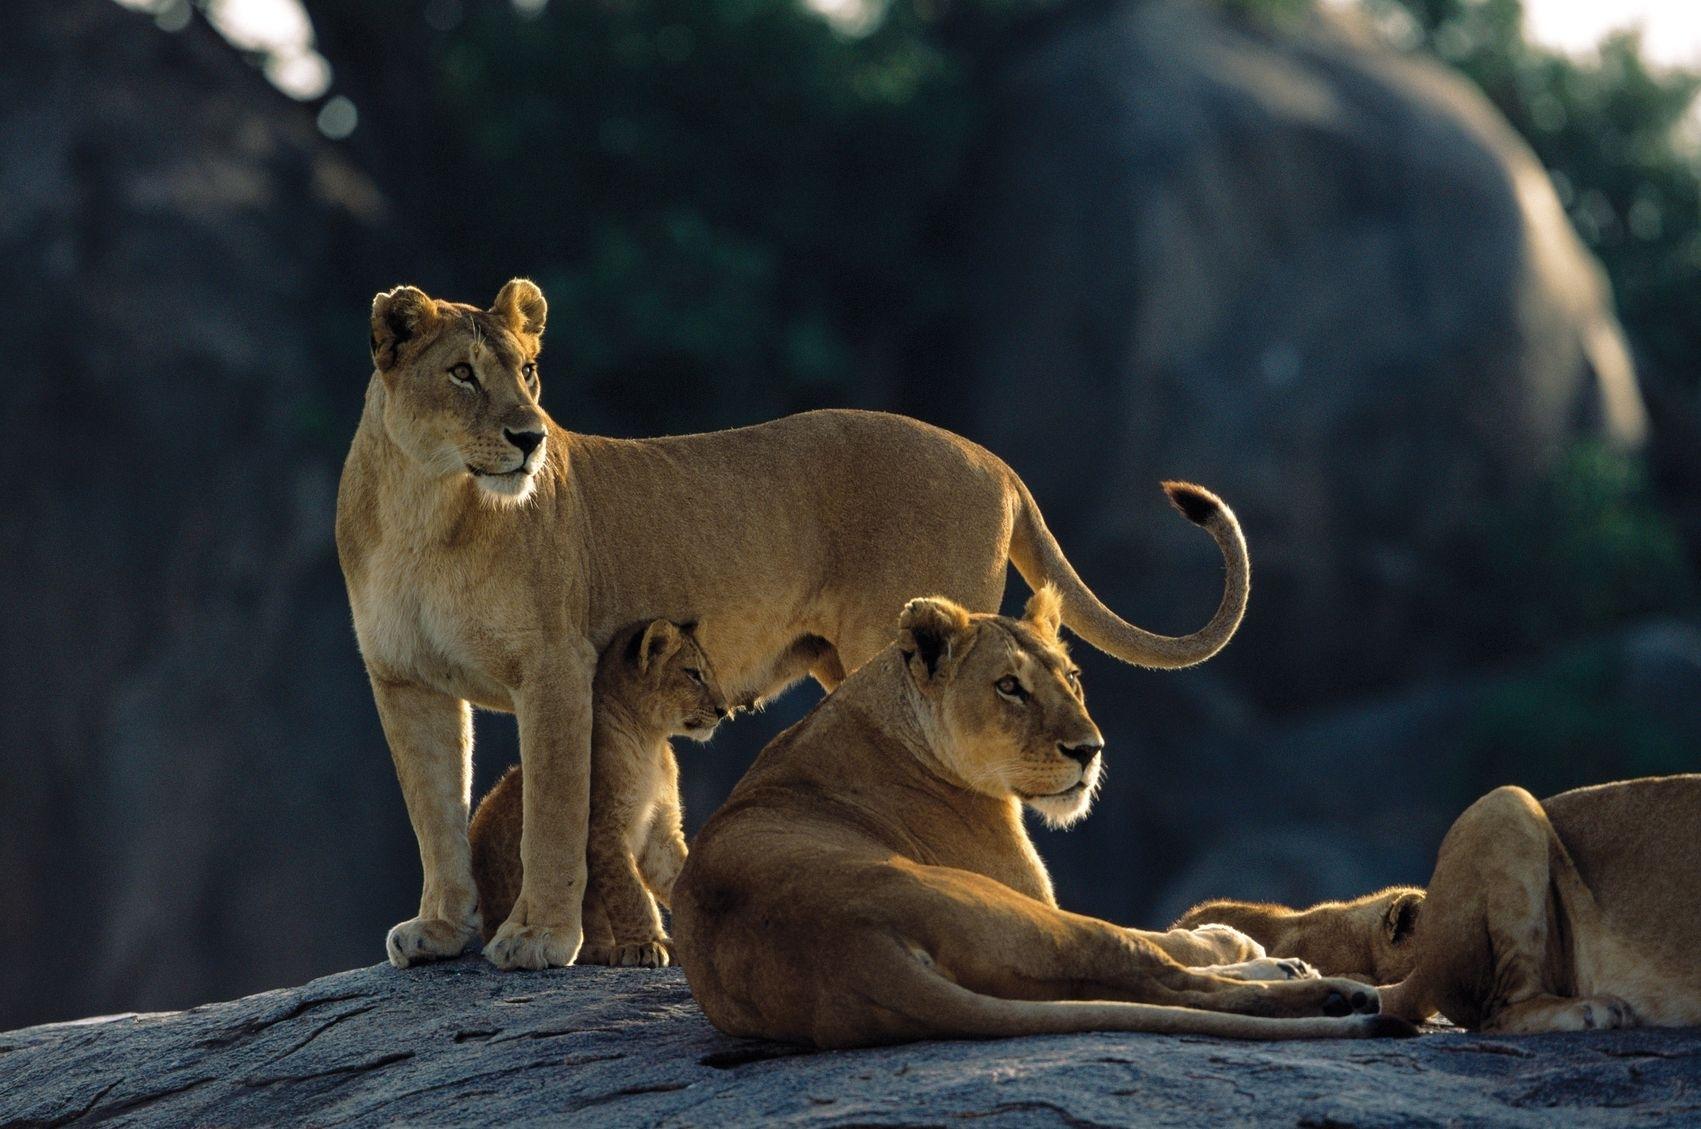 131283 download wallpaper Animals, Stones, To Lie Down, Lie, Family, Hunting, Hunt, Predators, Cubs, Young, Lions screensavers and pictures for free